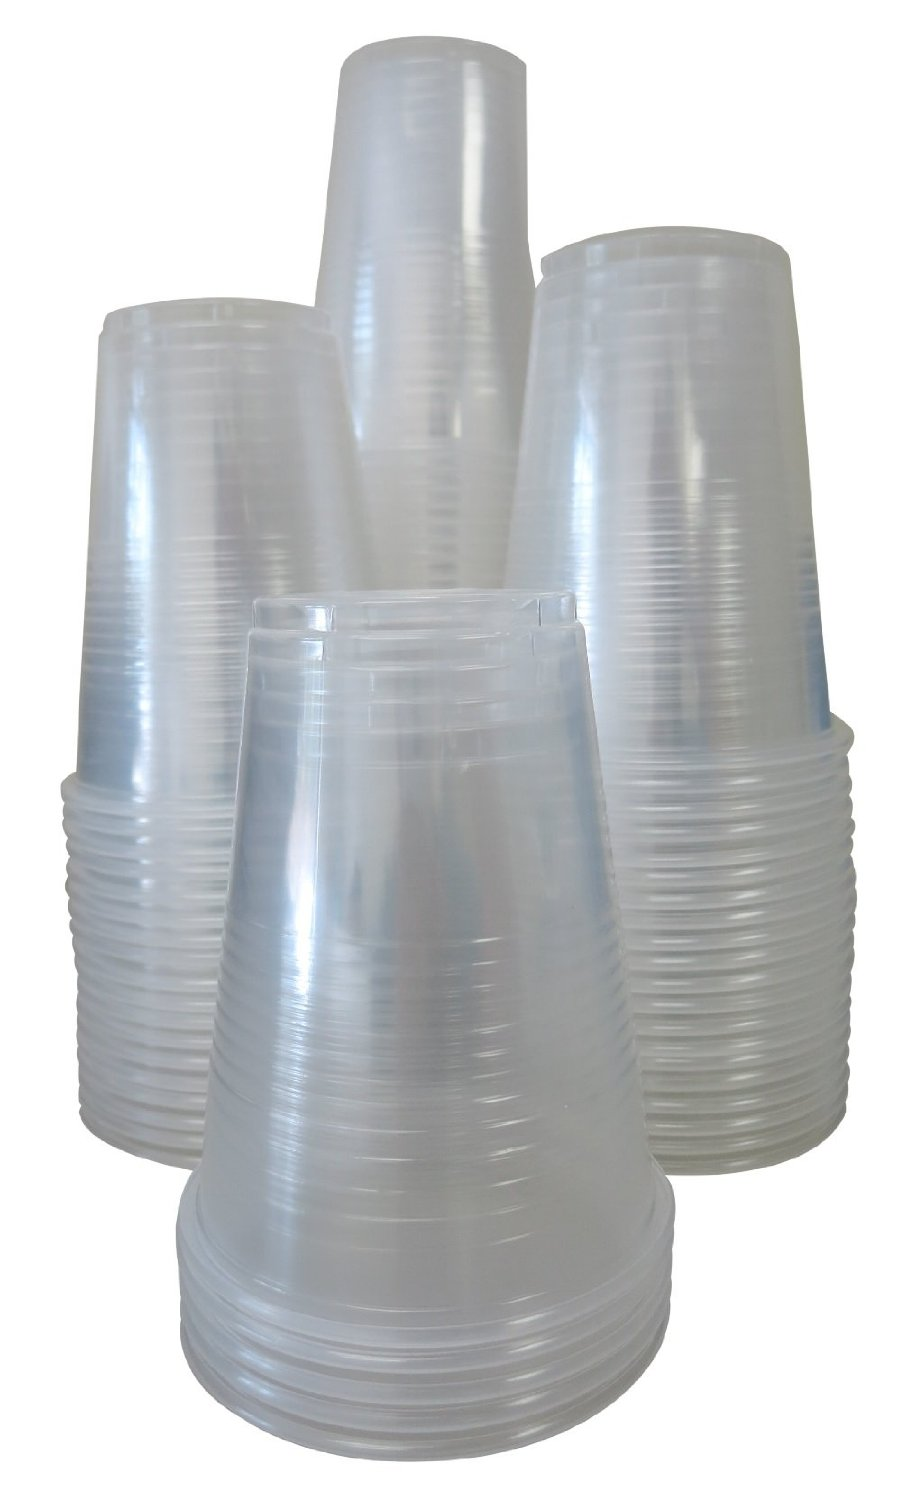 New Free Shippin Settings 9oz Clear Plastic Disposable Cups 80 Count Pack Of 3